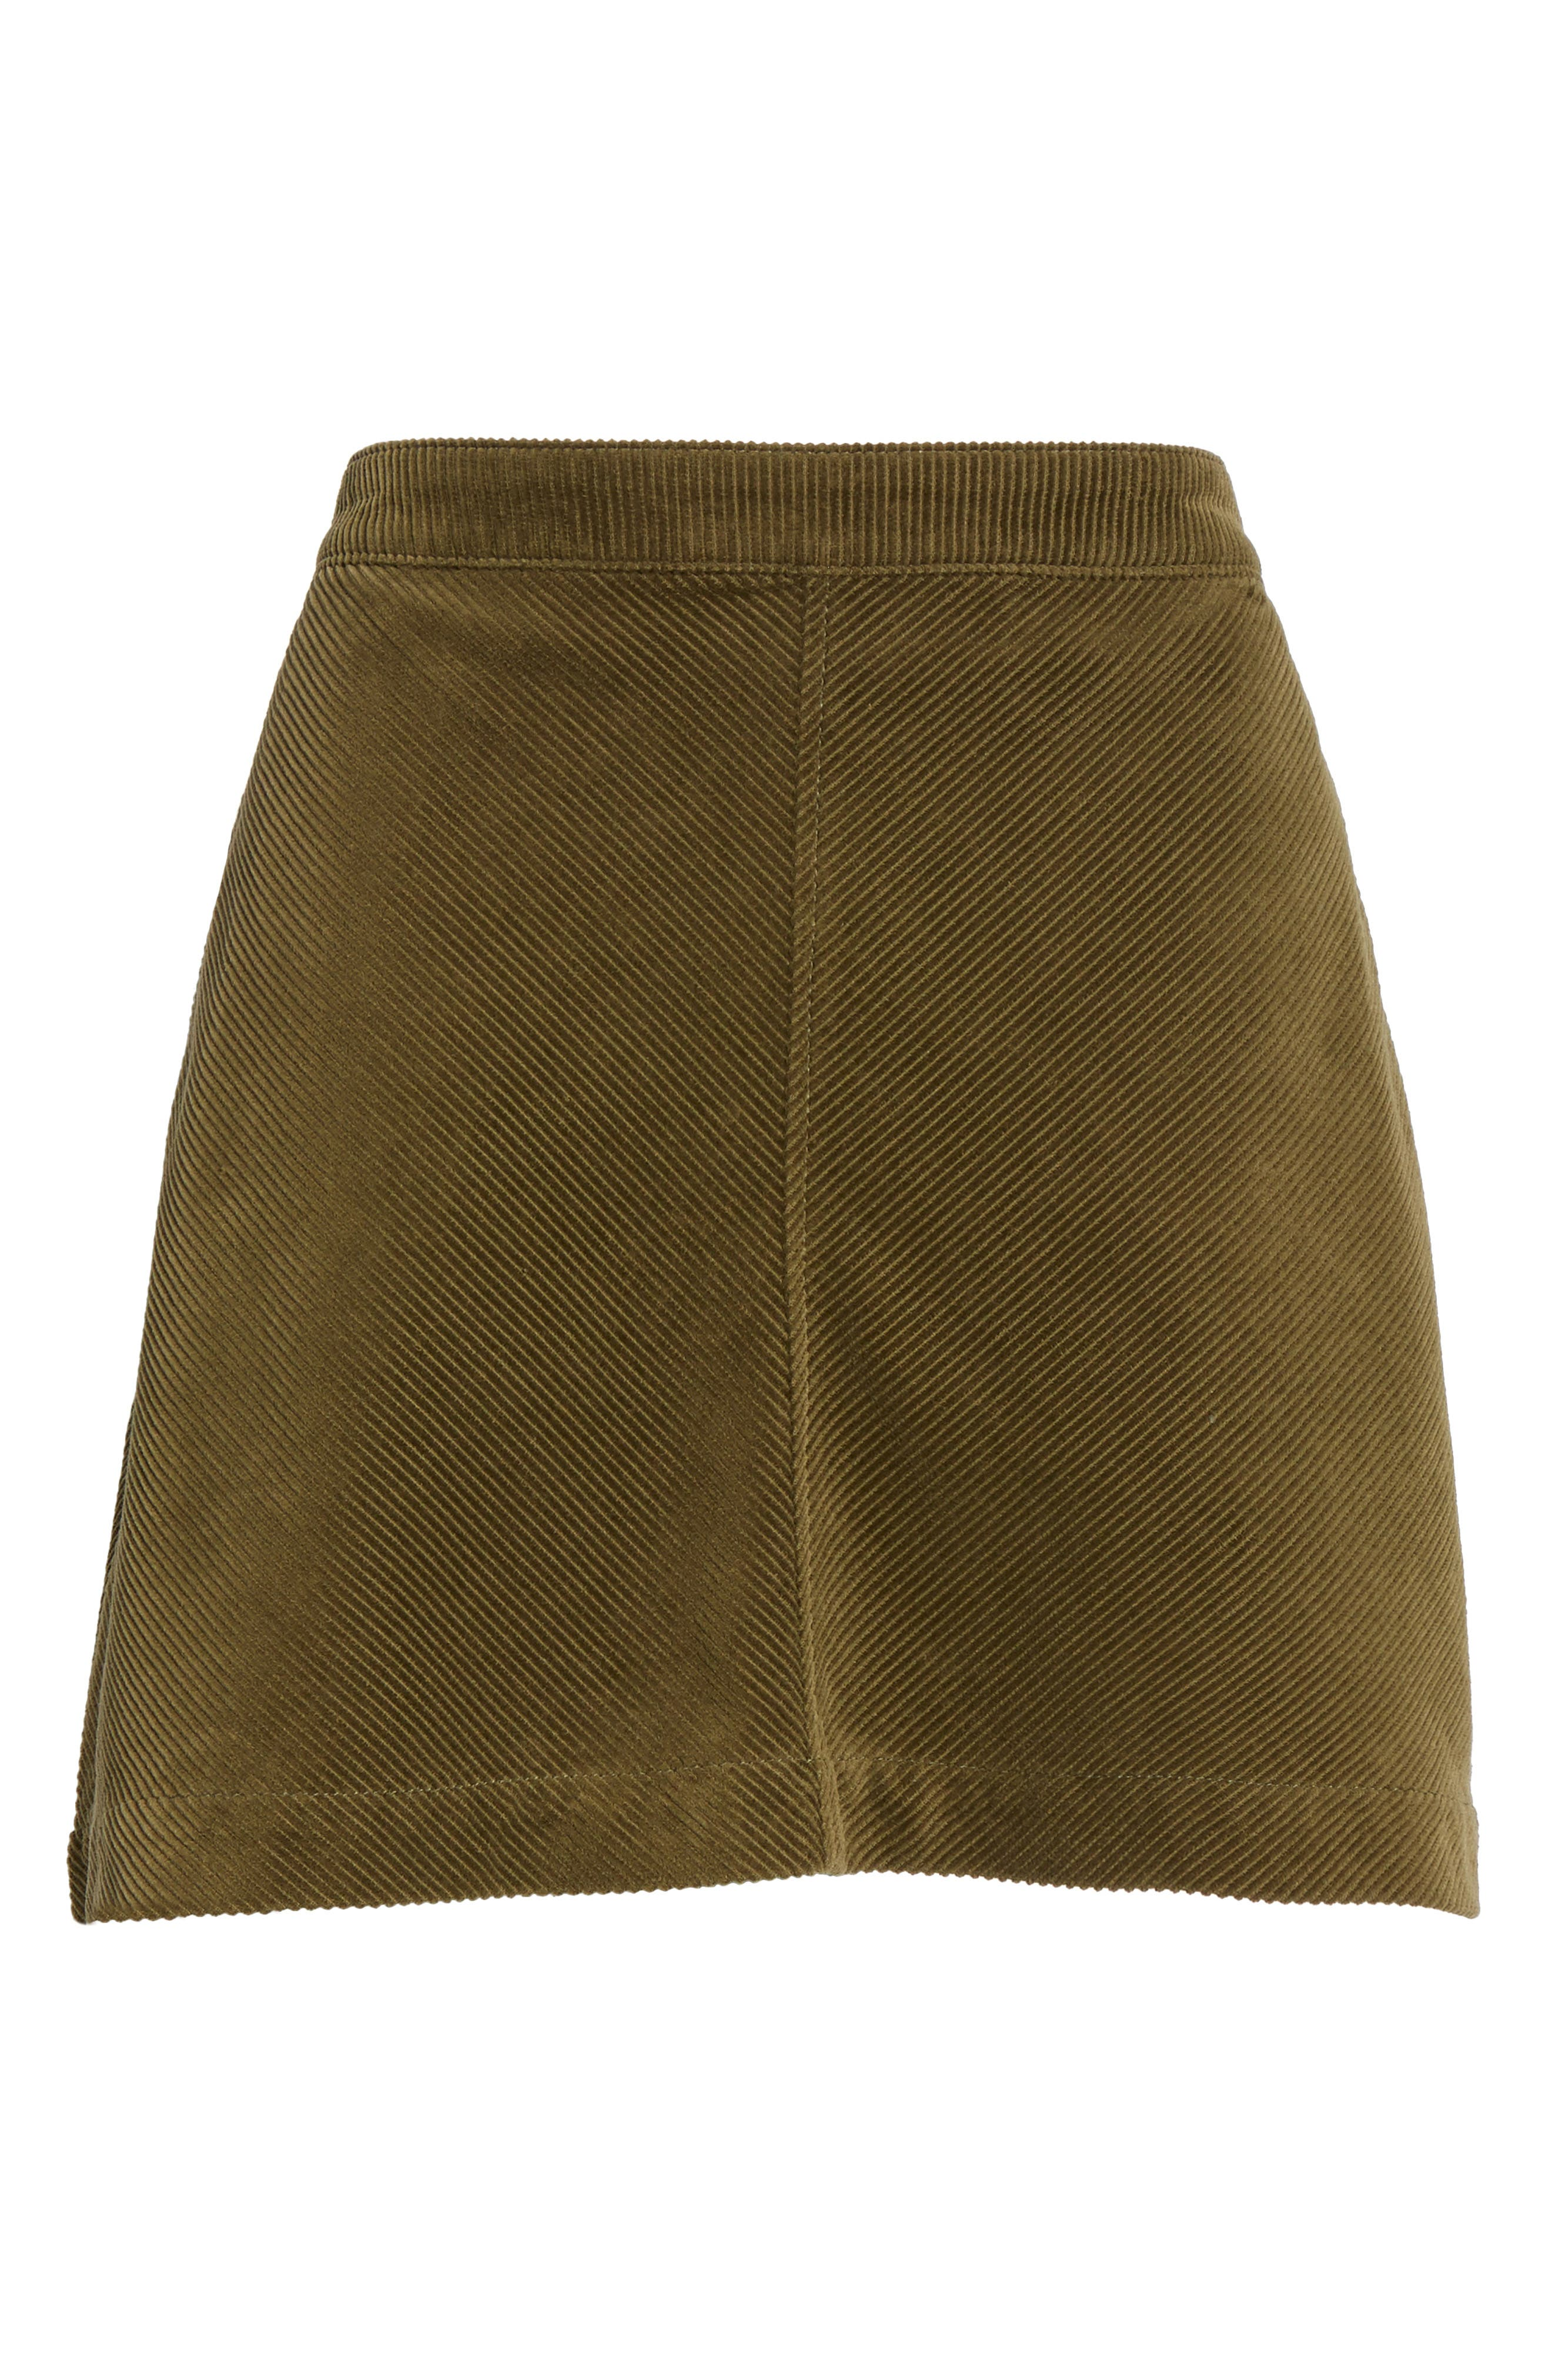 Corduroy A-Line Miniskirt,                             Alternate thumbnail 6, color,                             Olive Dark